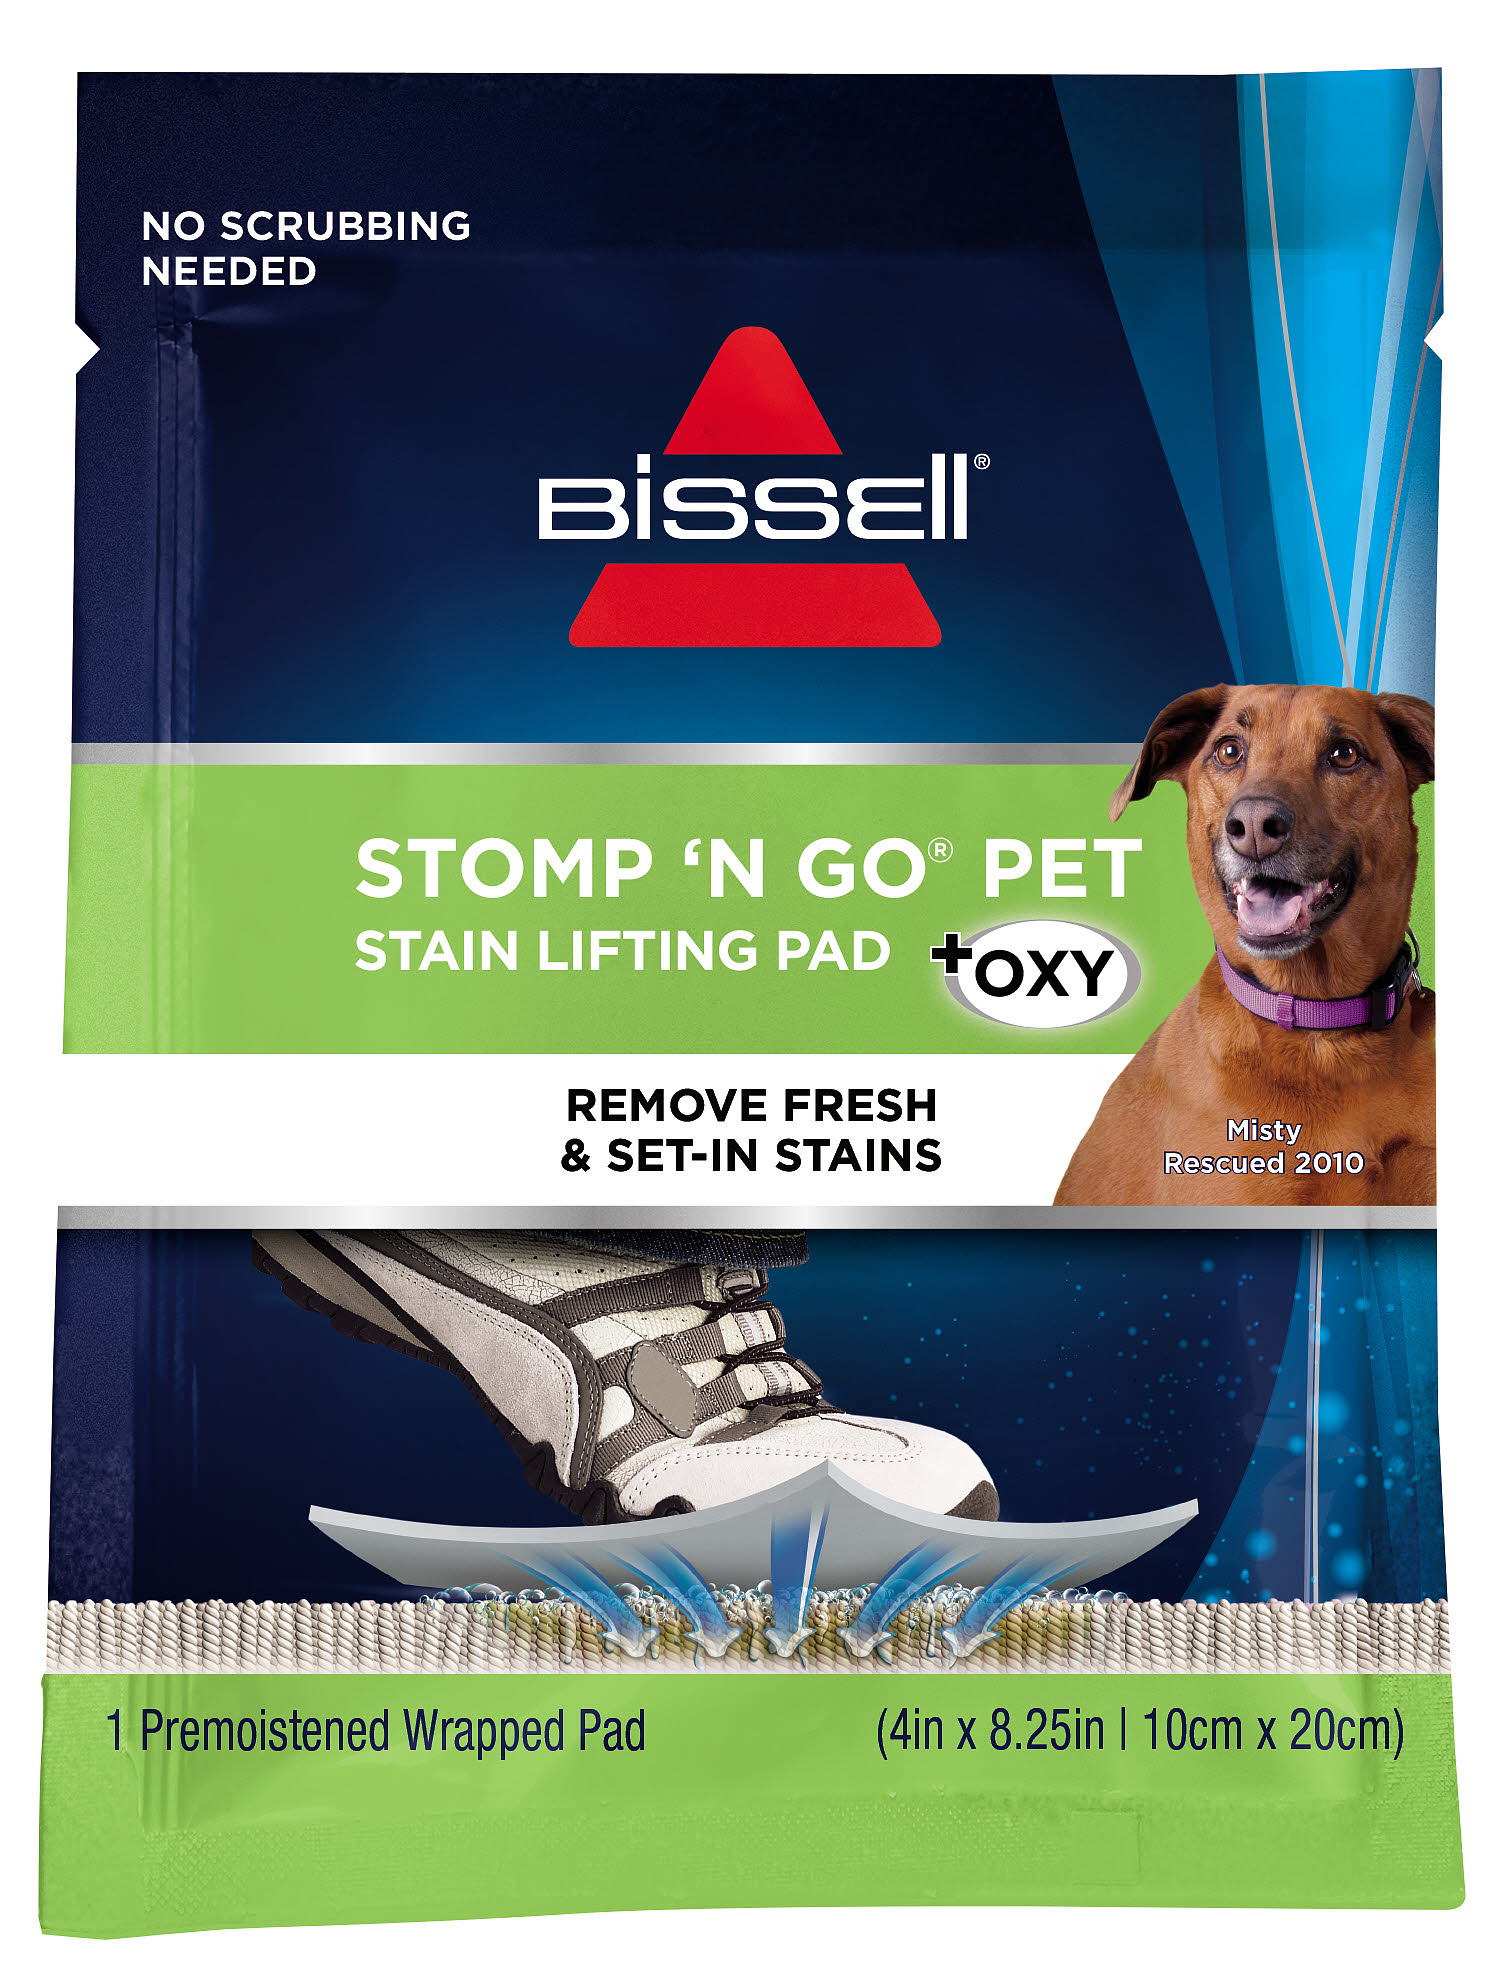 Bissell Stomp N Go Pet Stain Removing Pads With Oxy 20 Pack